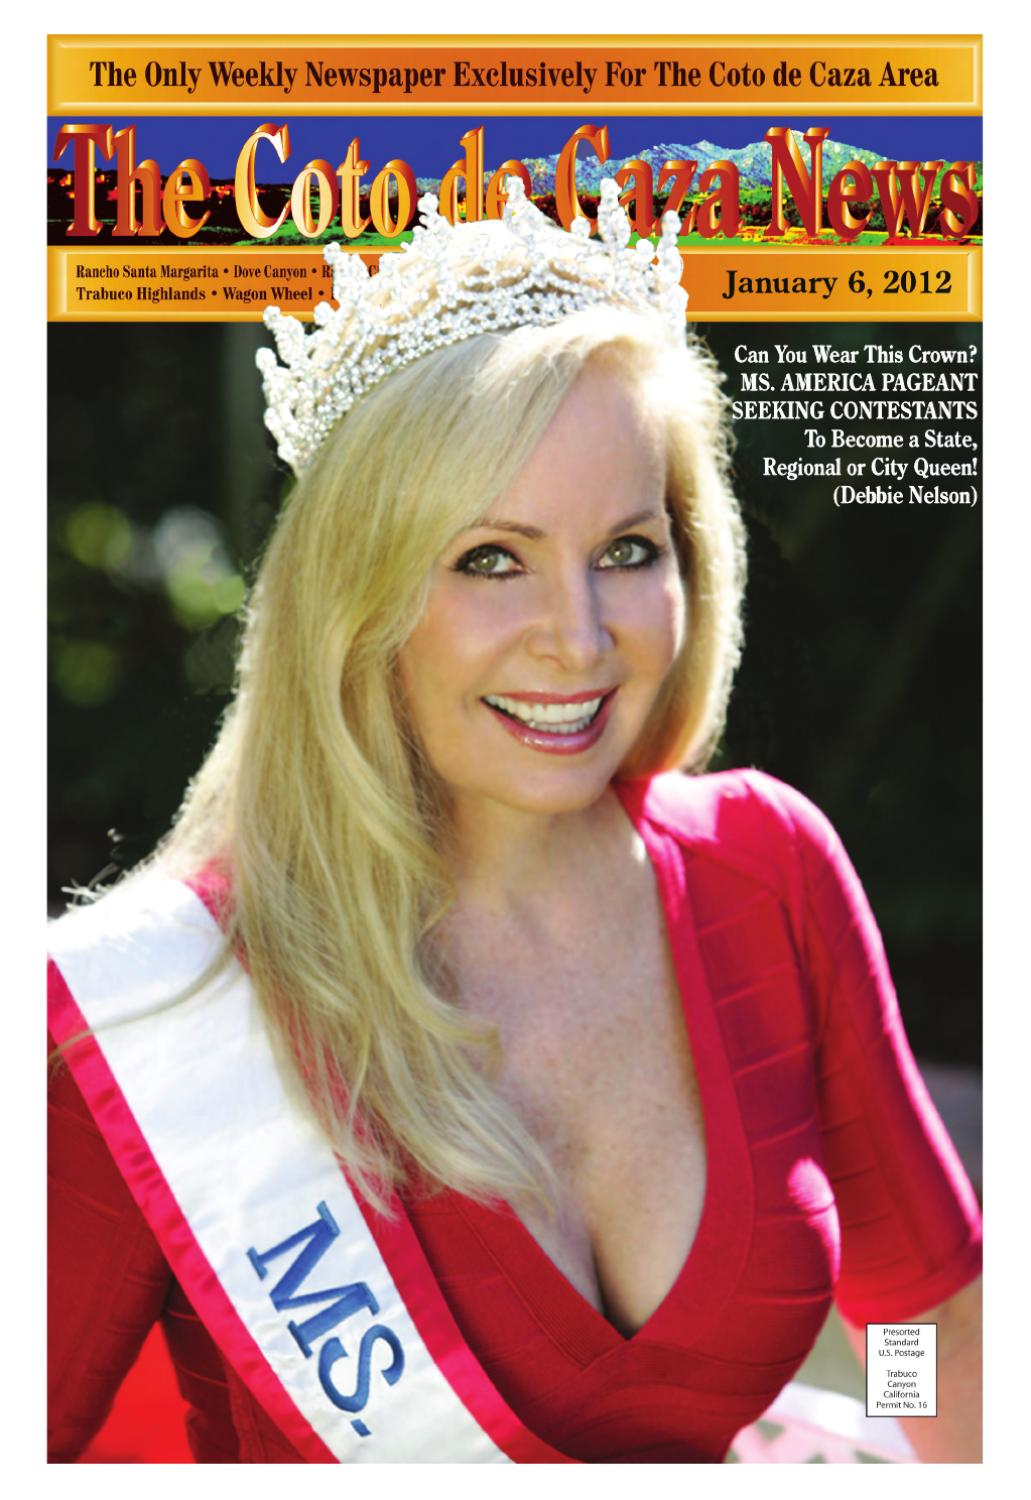 Coto de Caza News 1-6-12 by Mission Viejo News Group - issuu